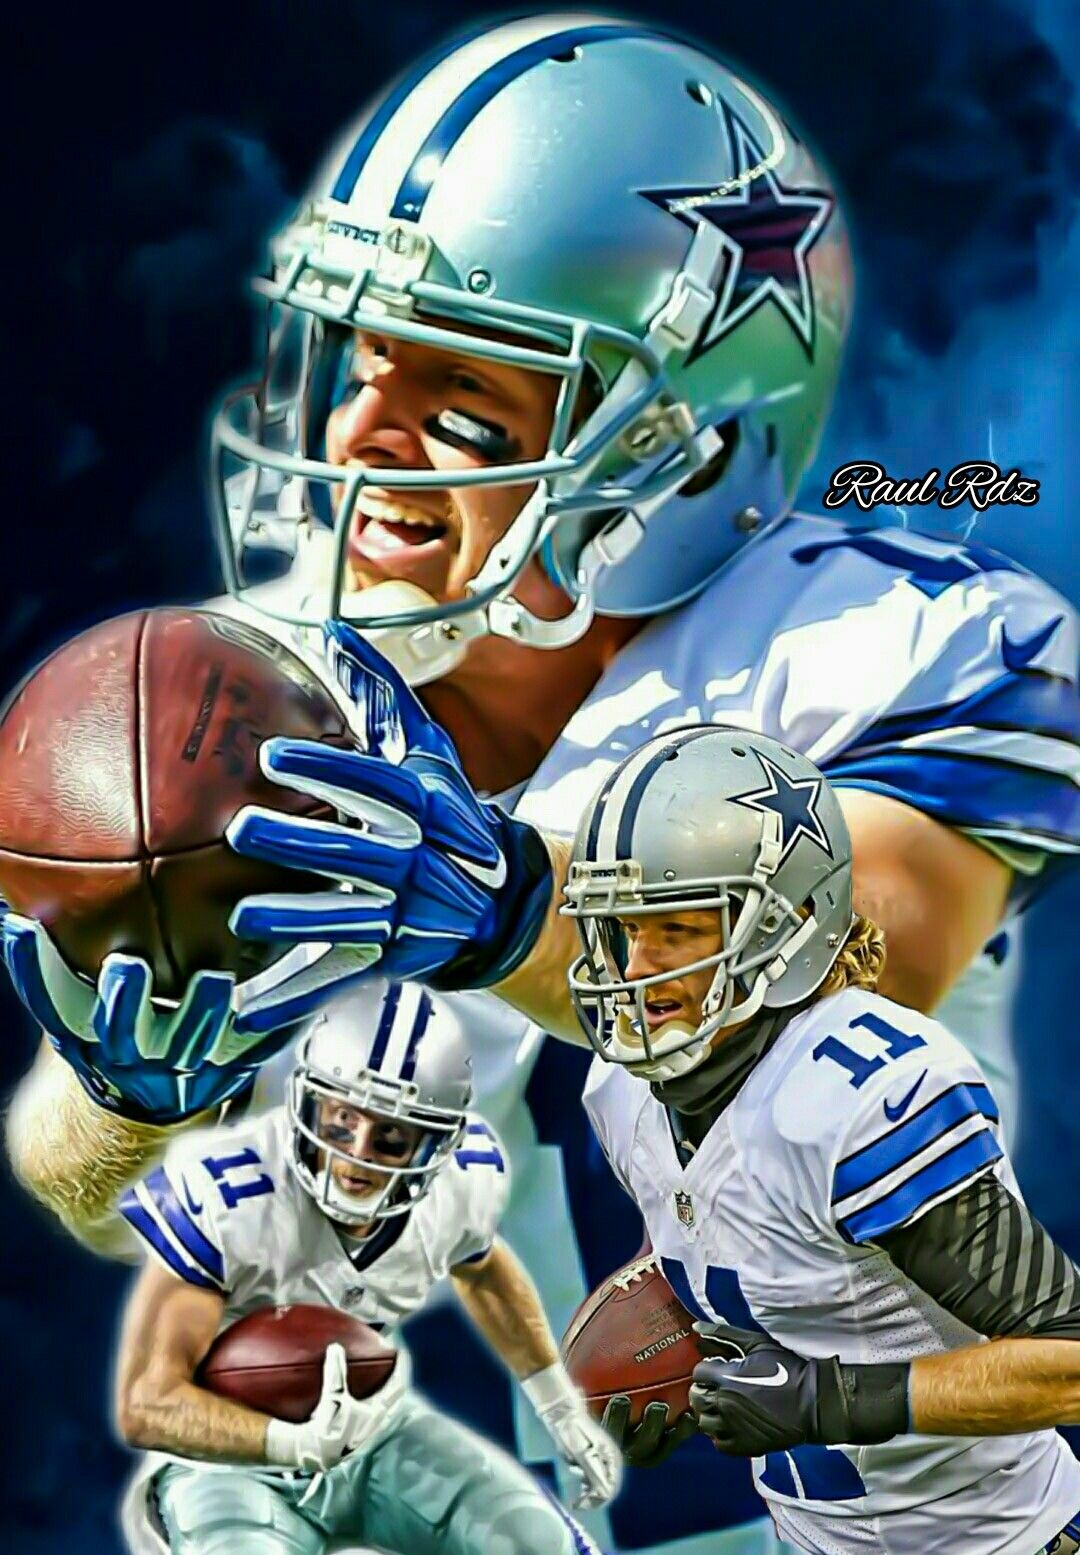 Pin by Janice Bisidas on Raul Rodriguez Dallas Cowboys